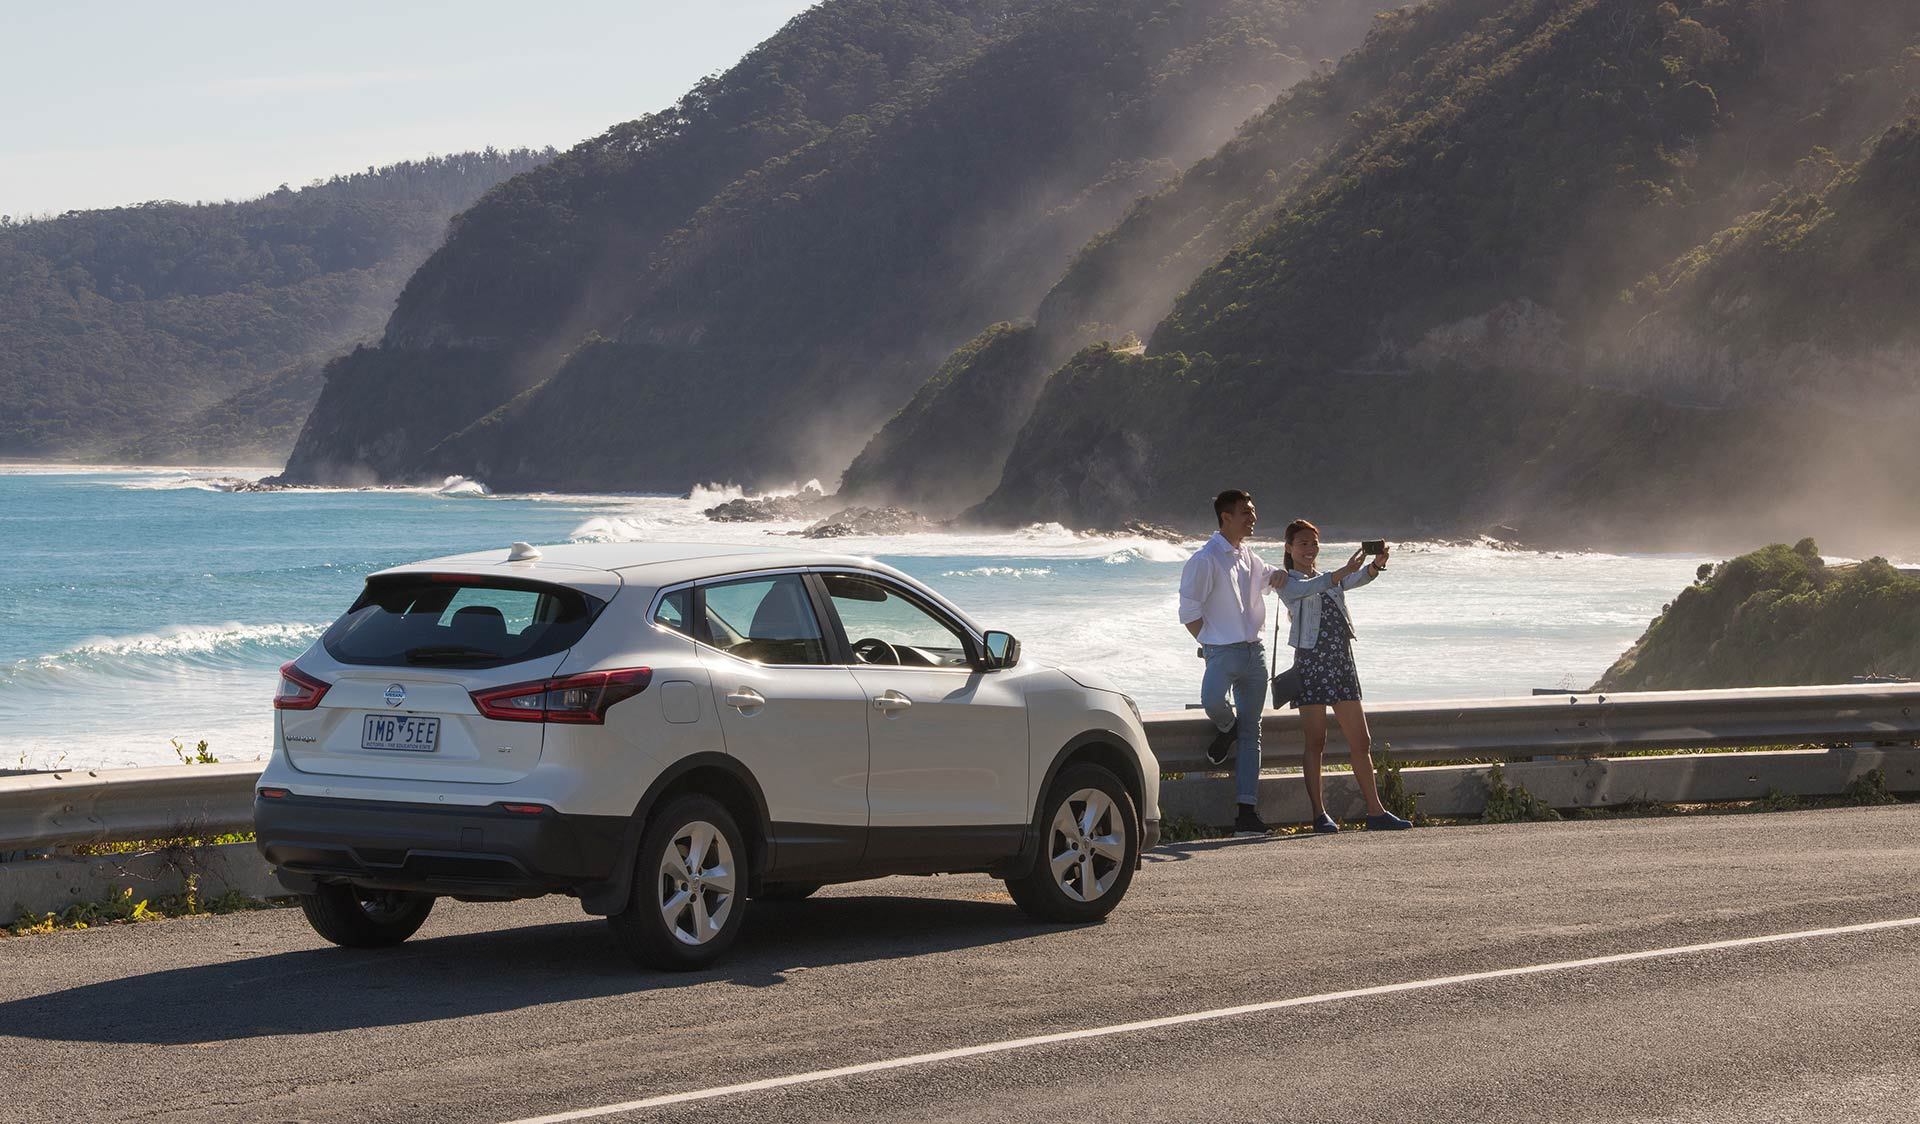 A couple stop on the side of the Great Ocean Road to take a picture.